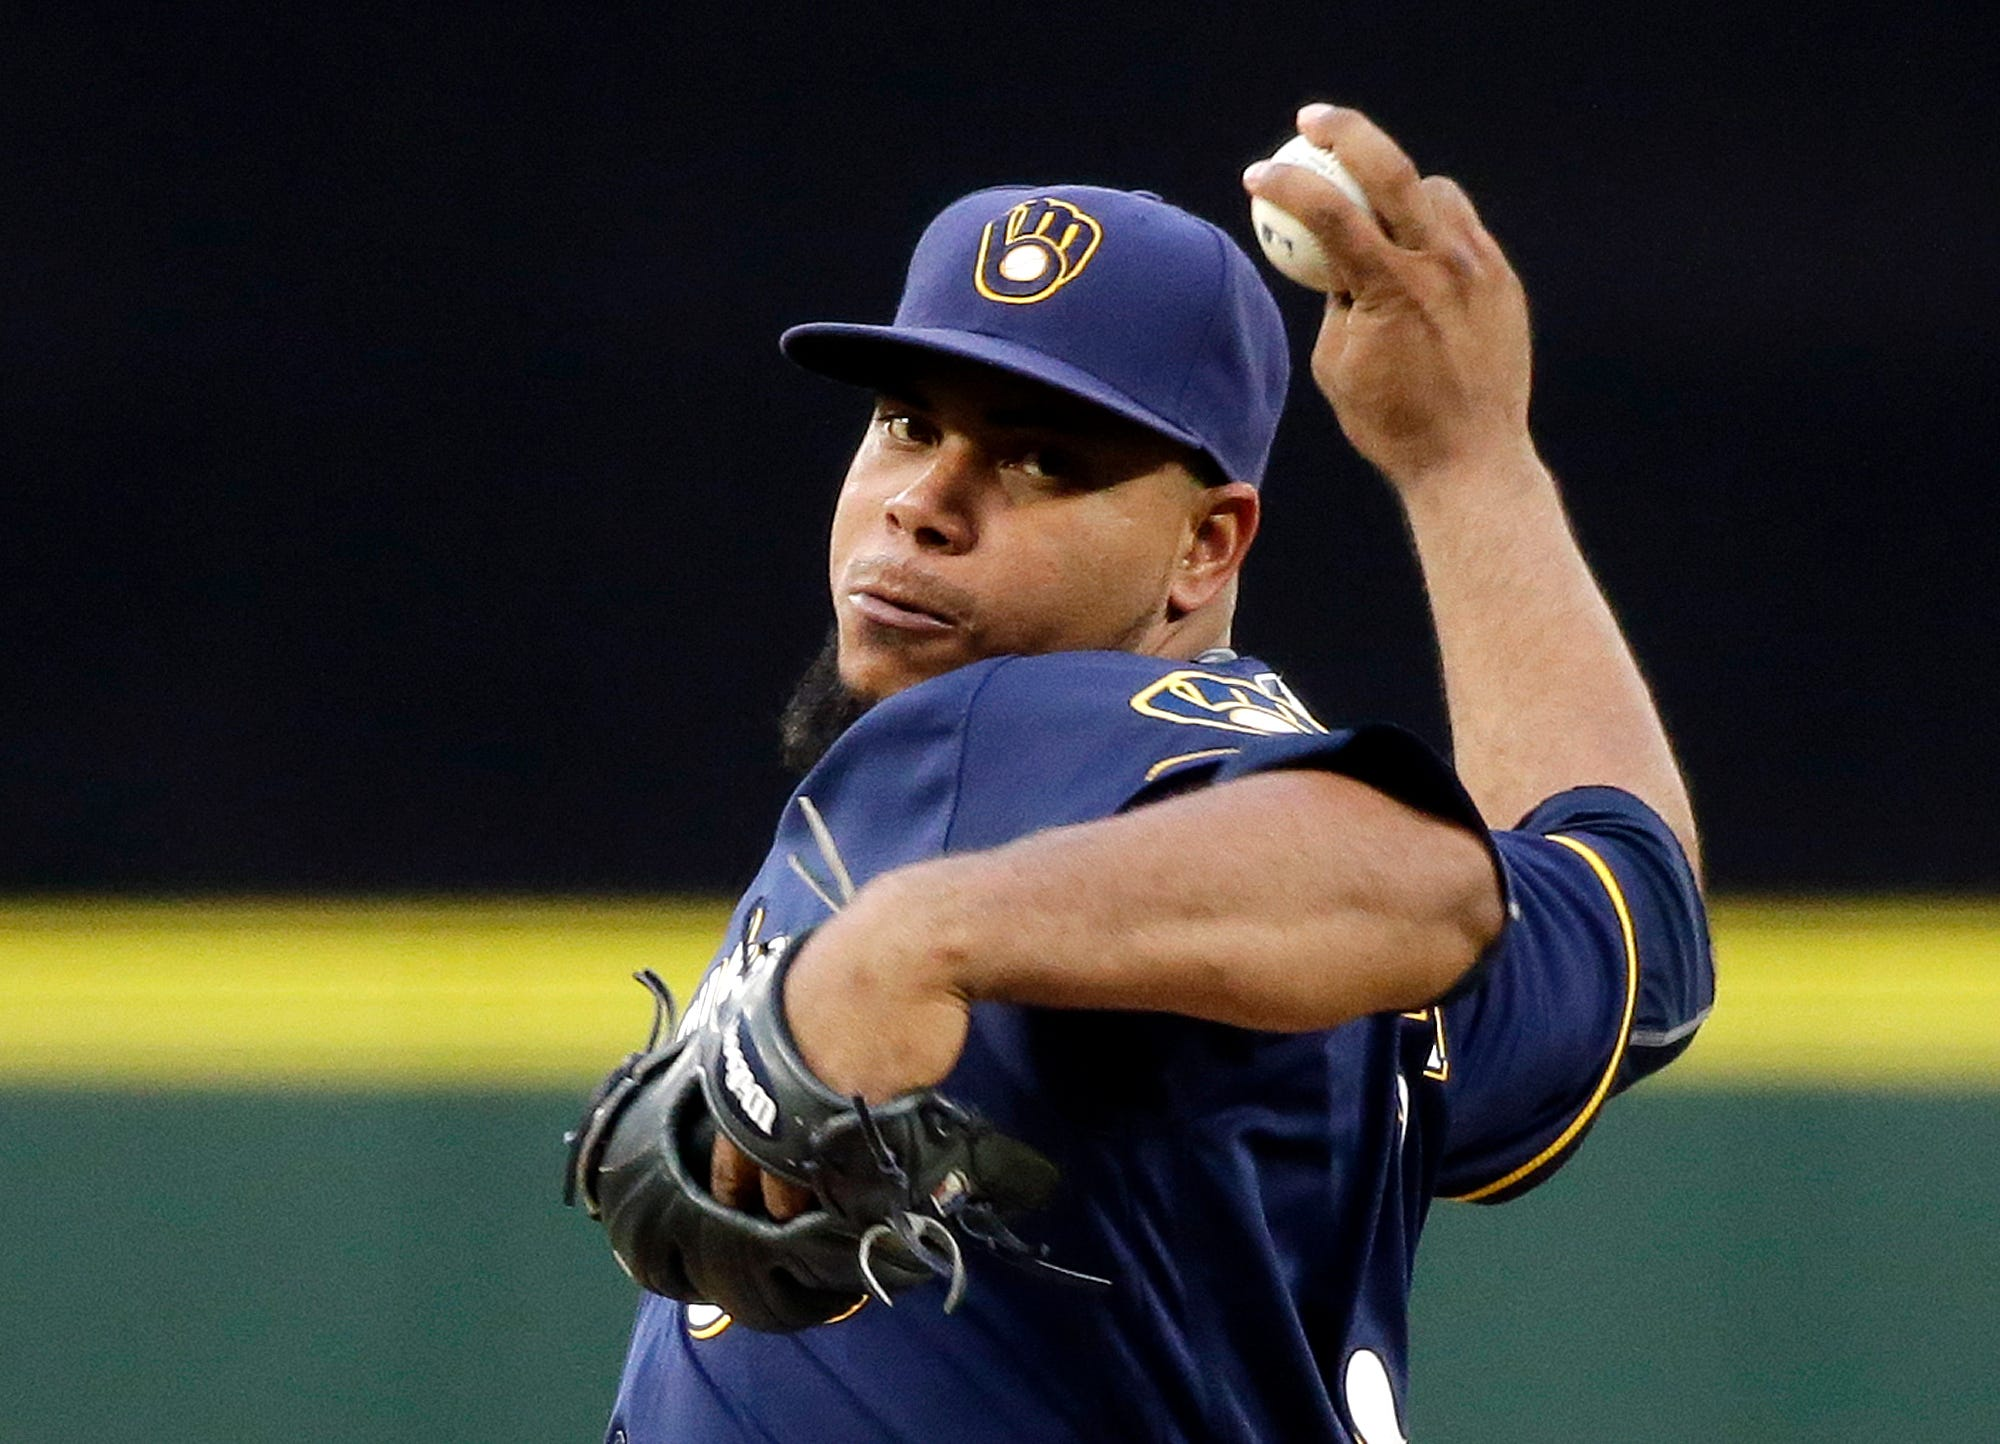 Wily Peralta tries to go 4-0